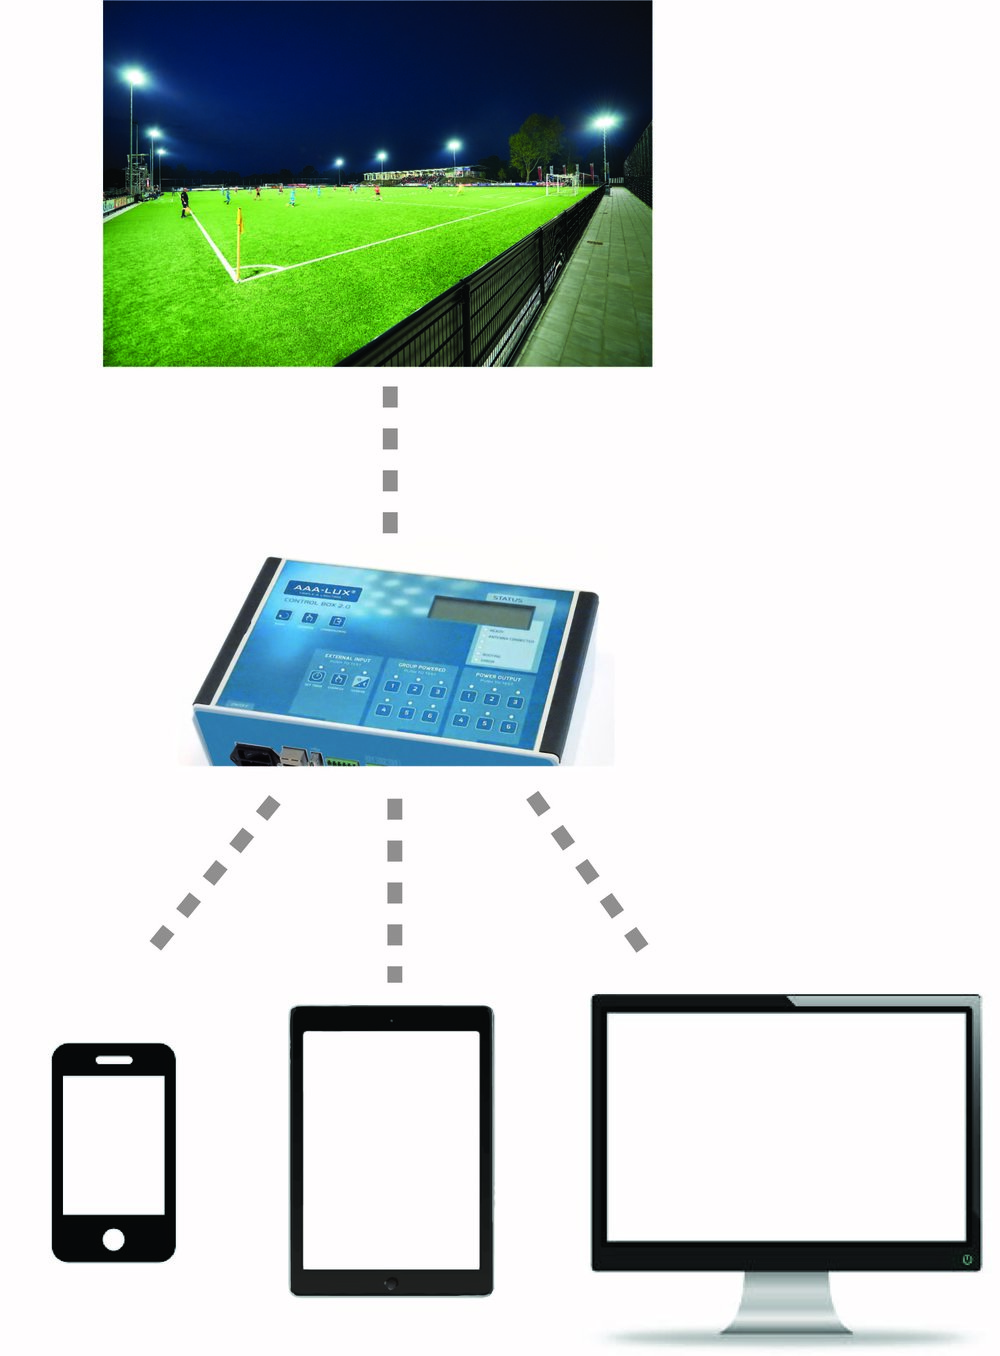 Lighting Control Management System - Wireless Controls